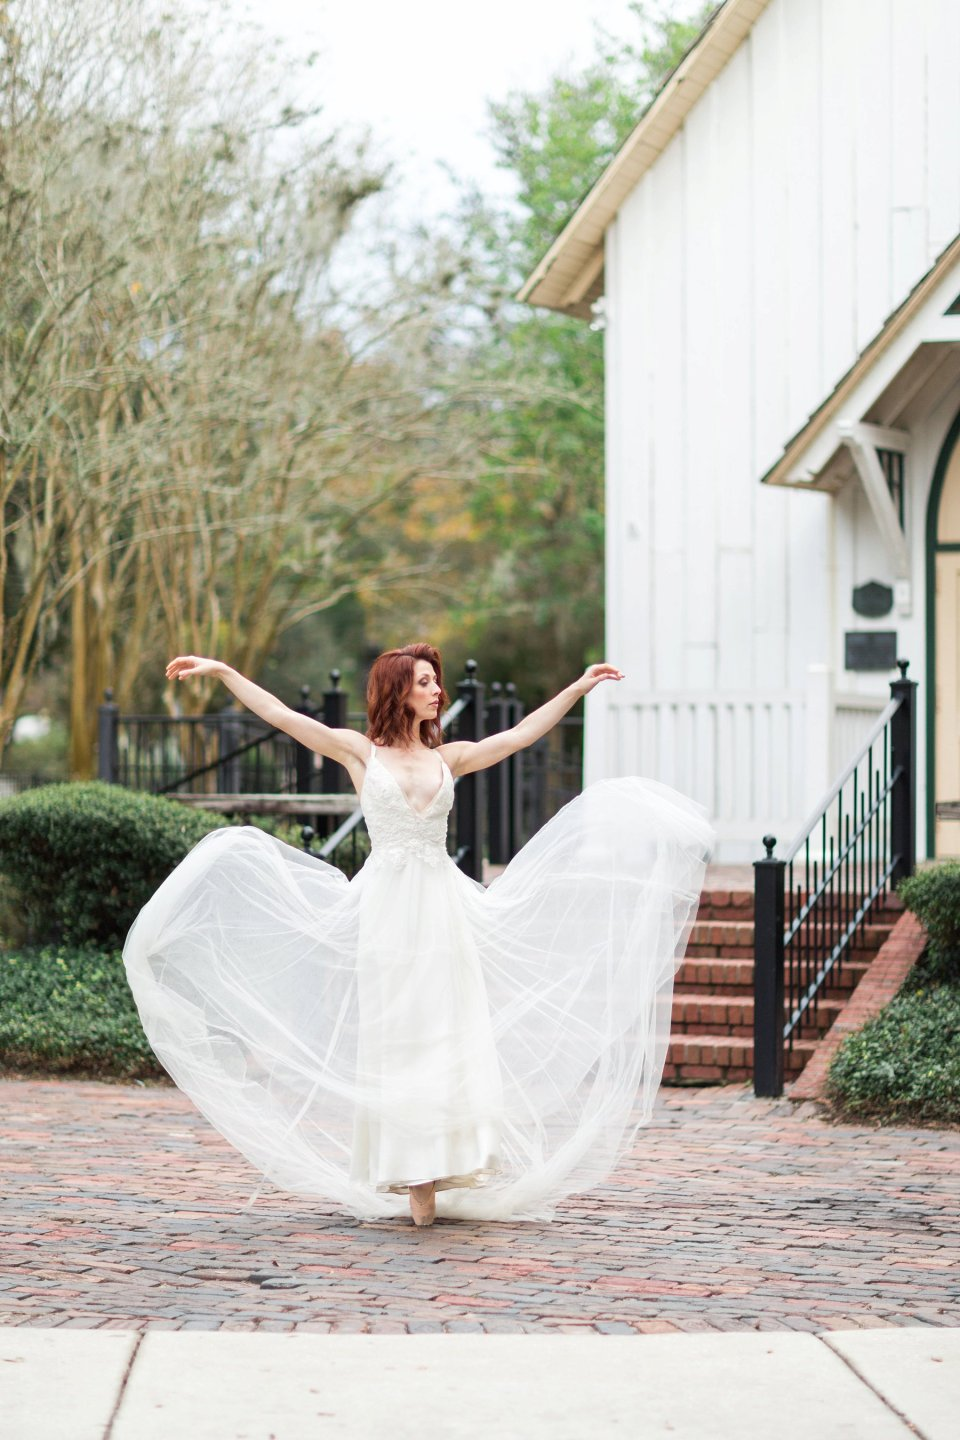 Ballet Inspired Styled Wedding | Pantone Colors Rose Quartz Serenity 2016 | Jacksonville, FL Wedding Photographer | www.bricibene.com